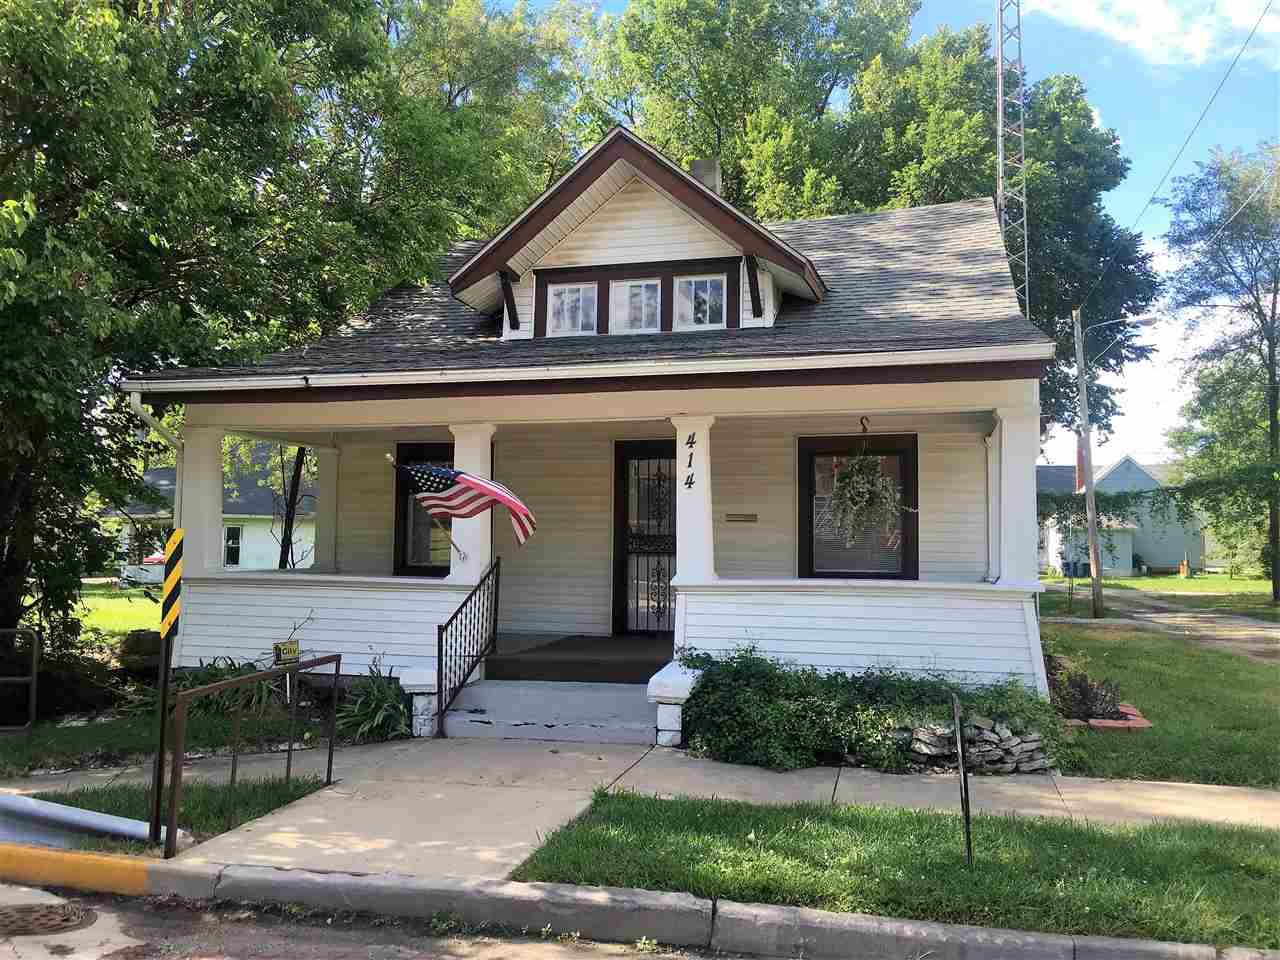 414 W 7TH, Marion, IN 46953